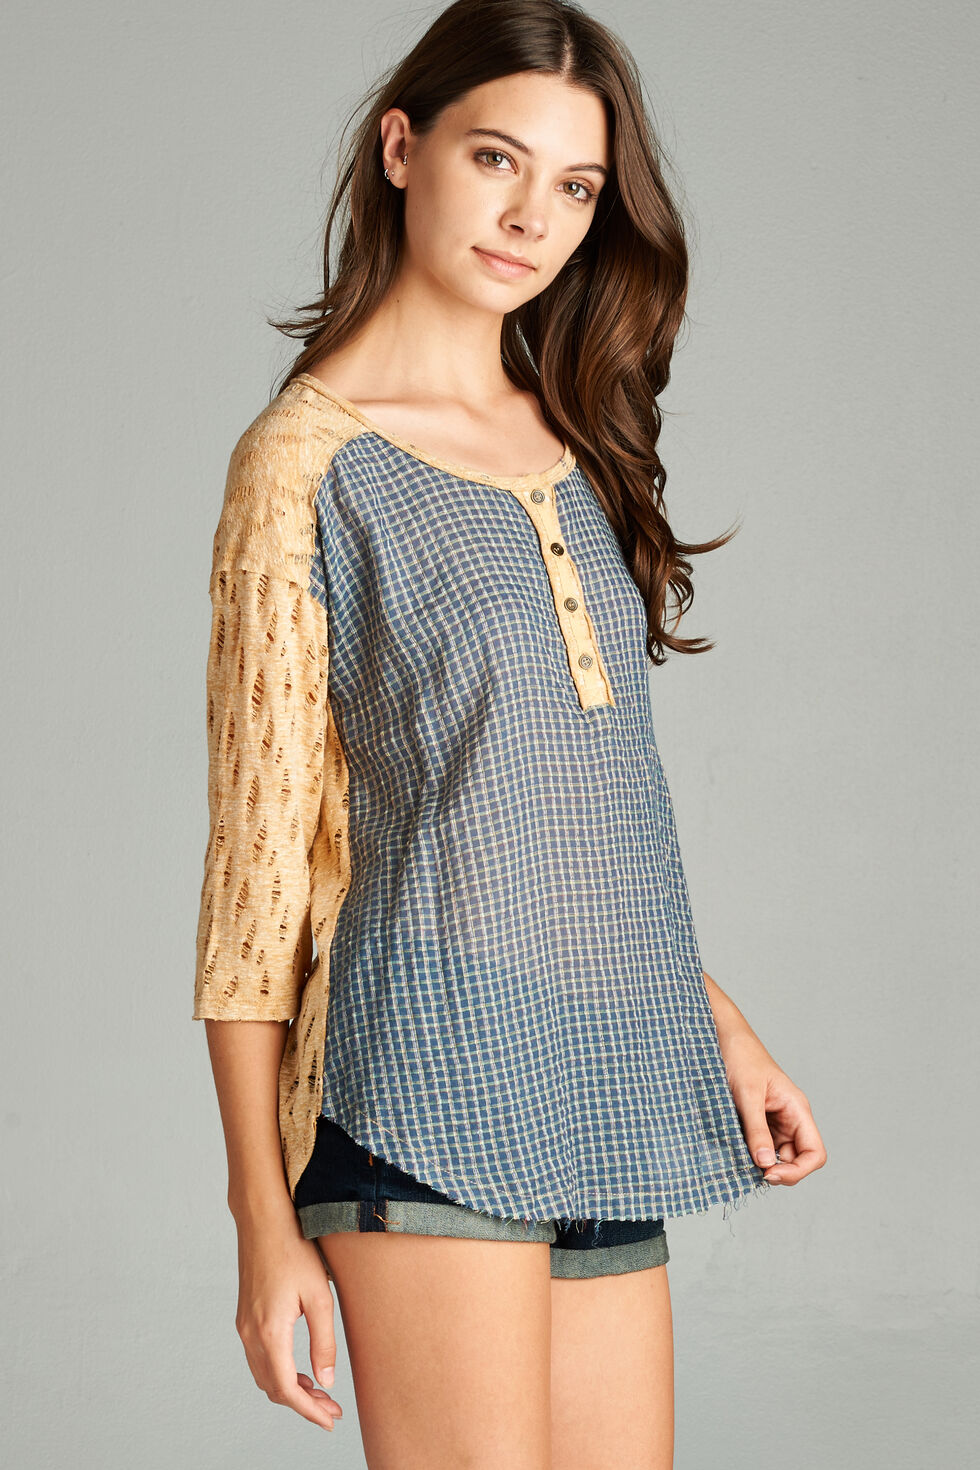 Hyku Women's Navy Woven Front Henly Top, Navy, hi-res